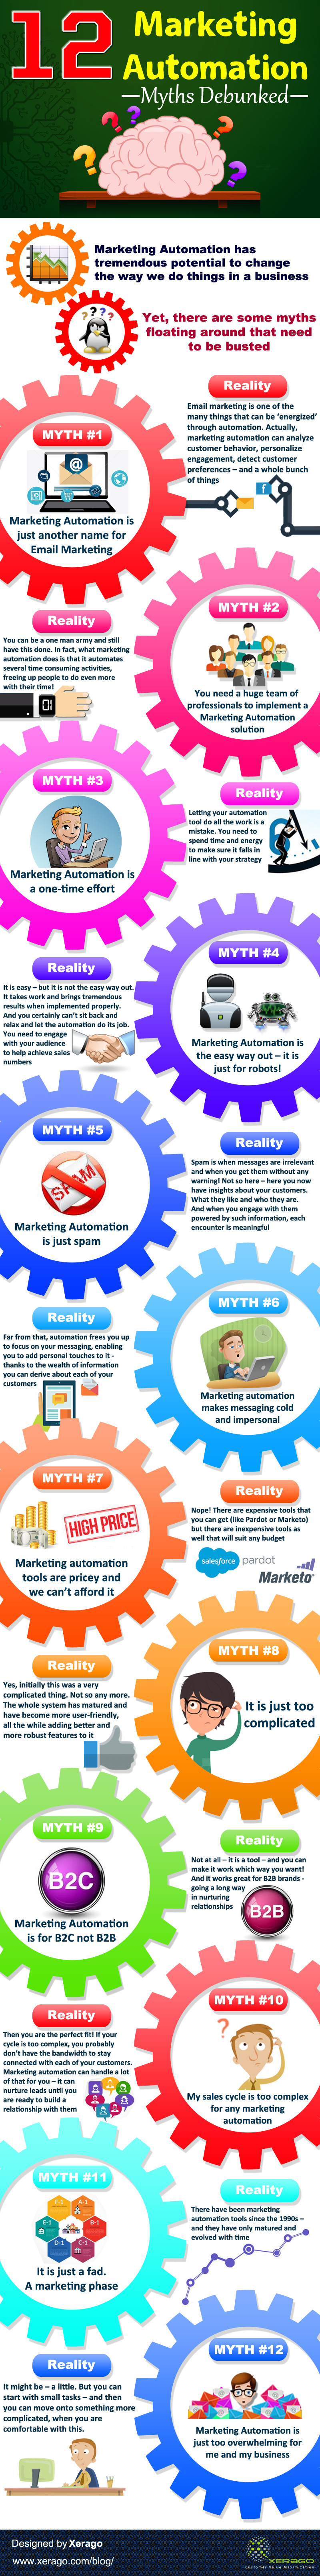 Marketing-Automation-Myths-Debunked